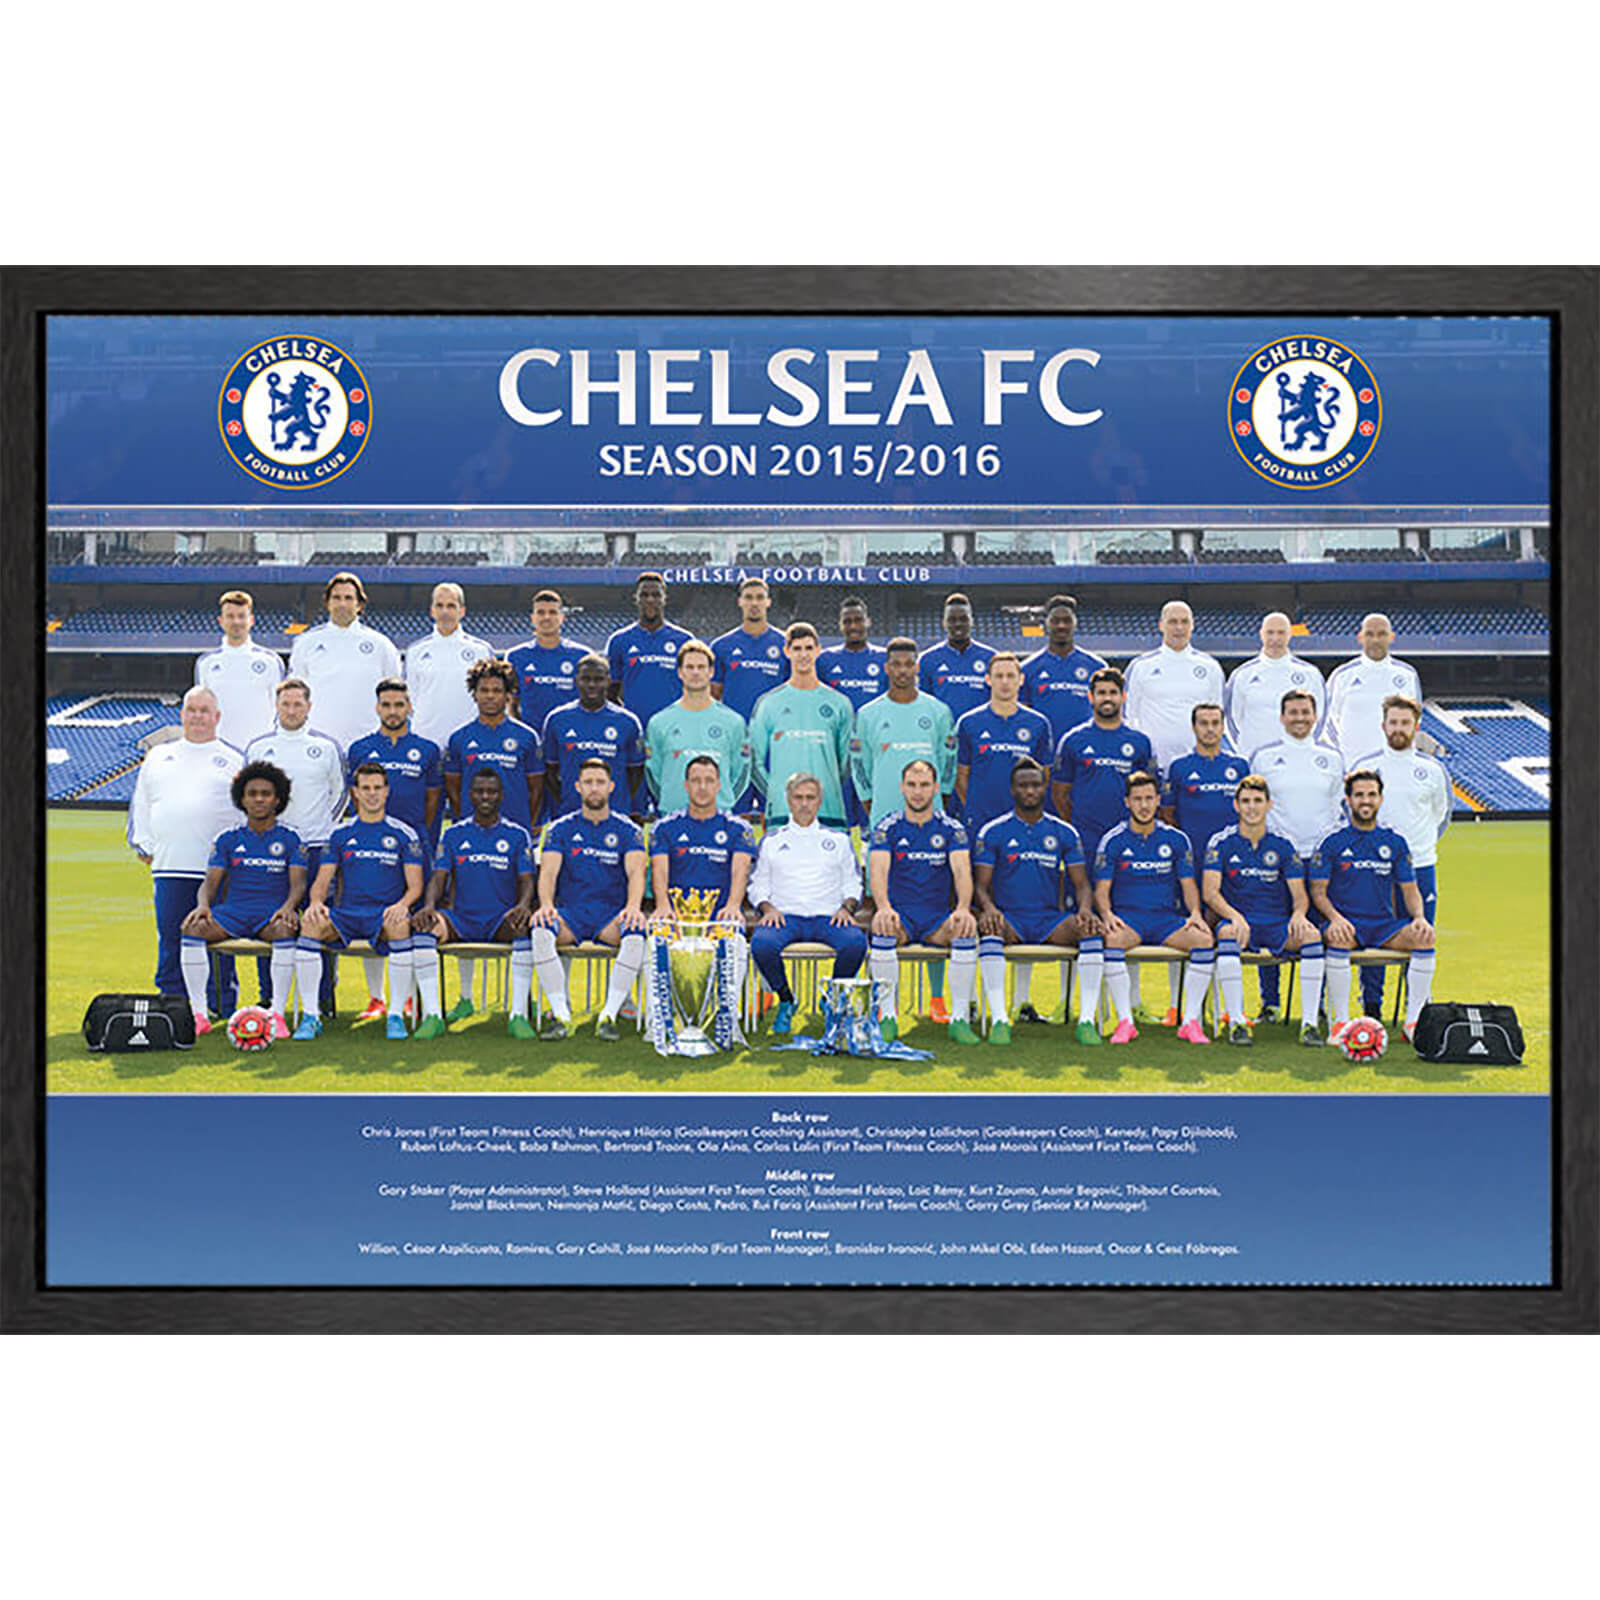 Chelsea Team Photo 15/16 - 61 x 91.5cm Framed Maxi Poster